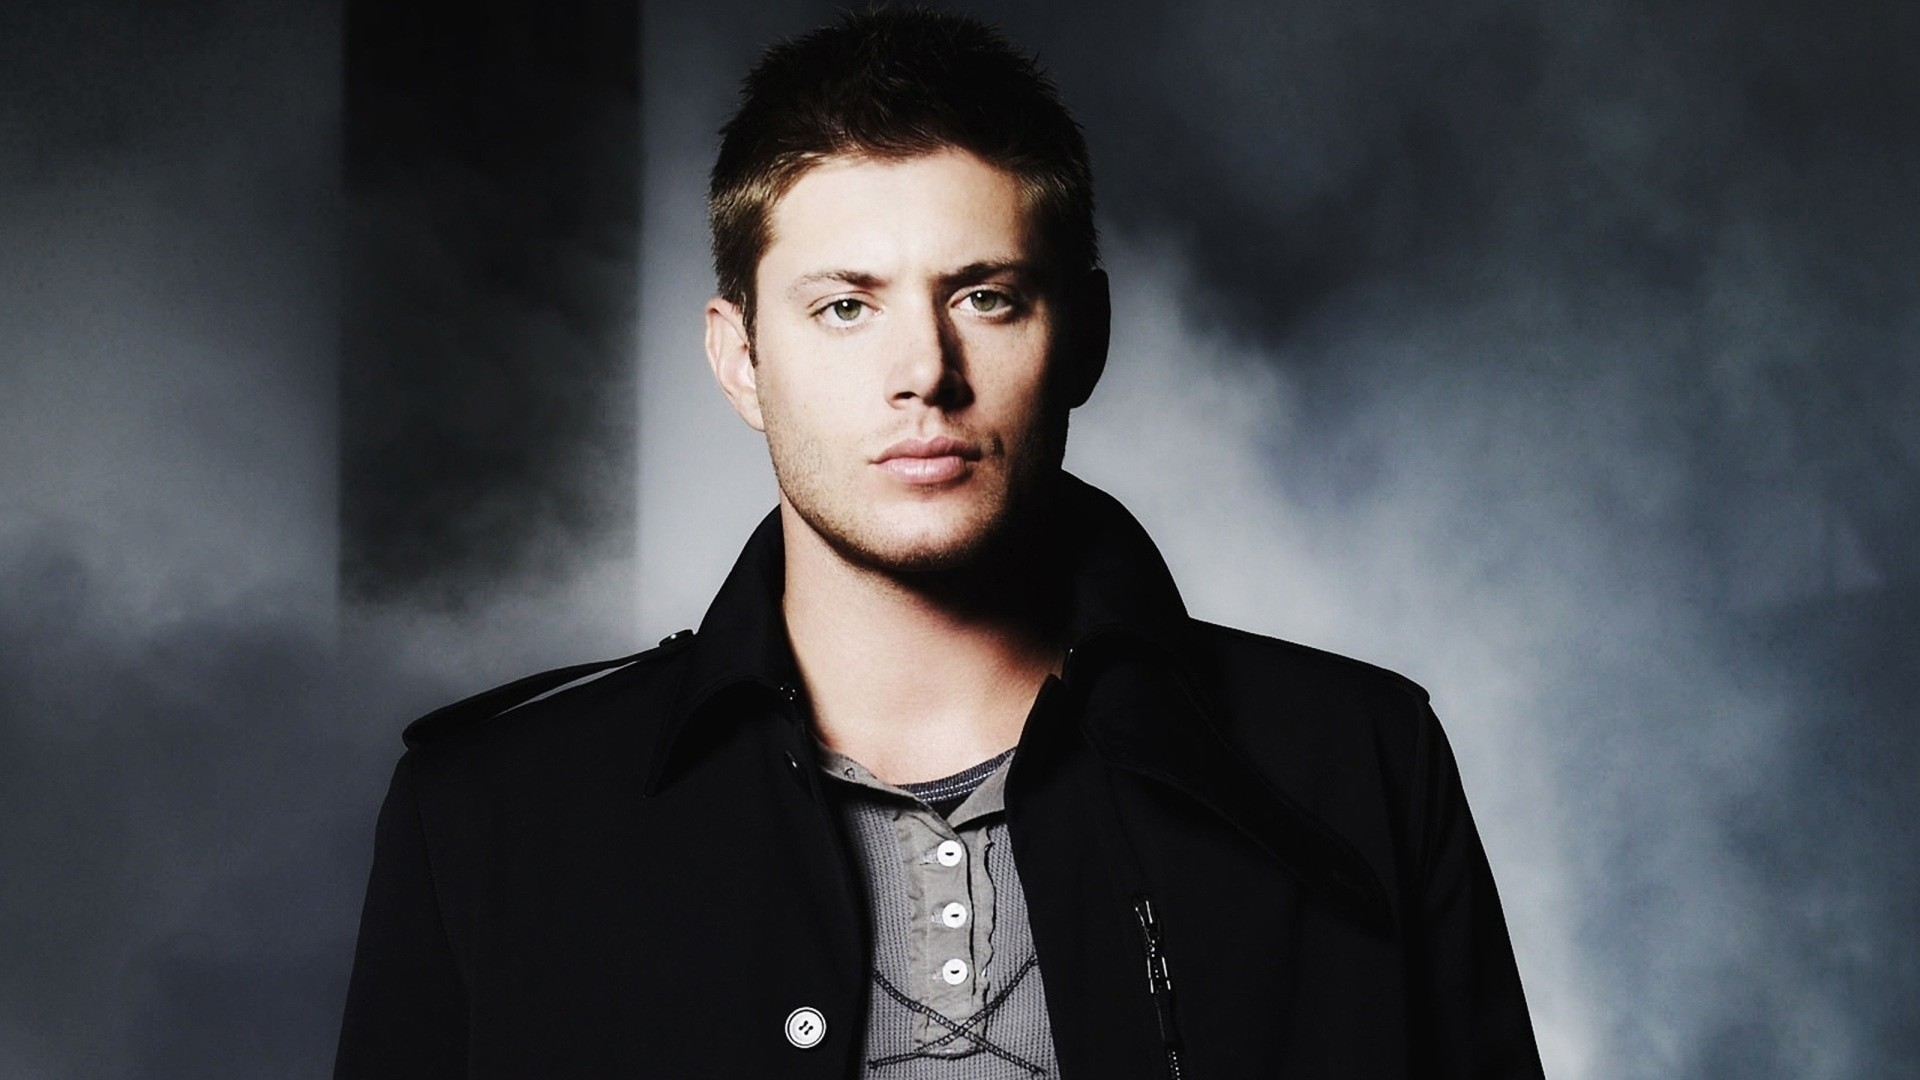 1920x1080 Image - Supernatural-wallpaper-dean-hd-wallpapers.jpg | Supernatural Wiki |  FANDOM powered by Wikia